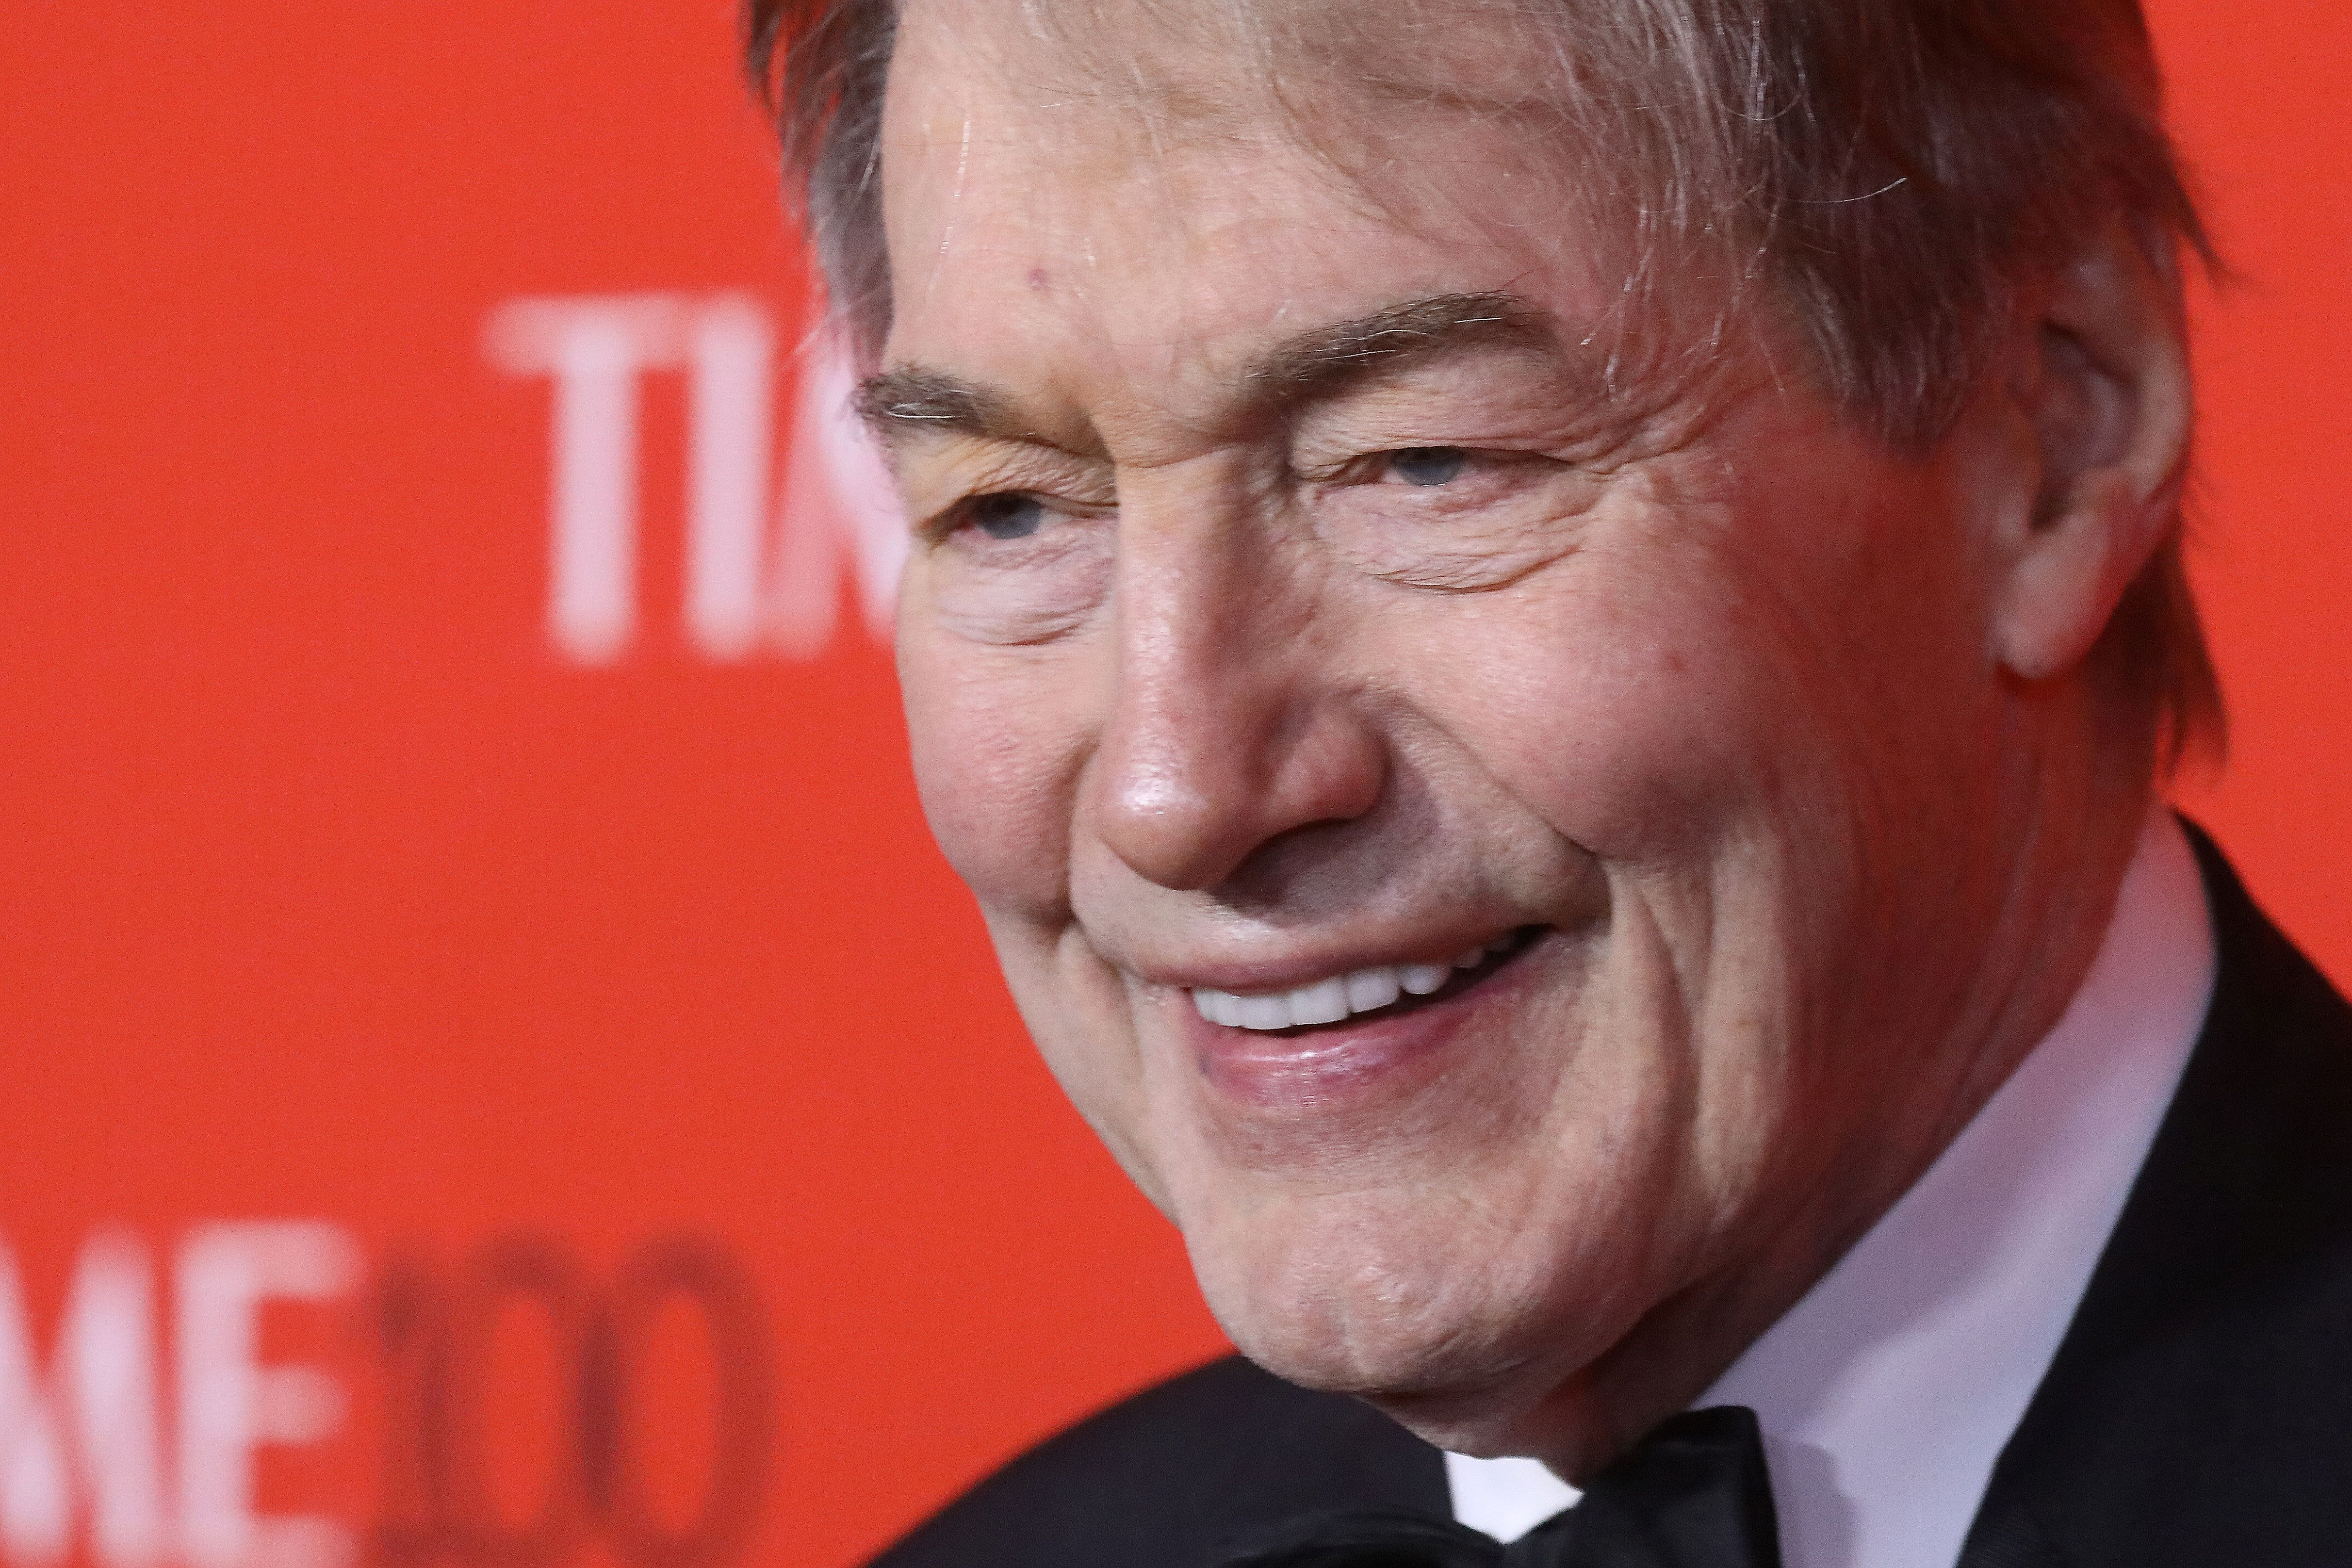 TV host Charlie Rose arrives for the Time 100 Gala in the Manhattan borough of New York, New York, U.S. April 25, 2017.   REUTERS/Carlo Allegri